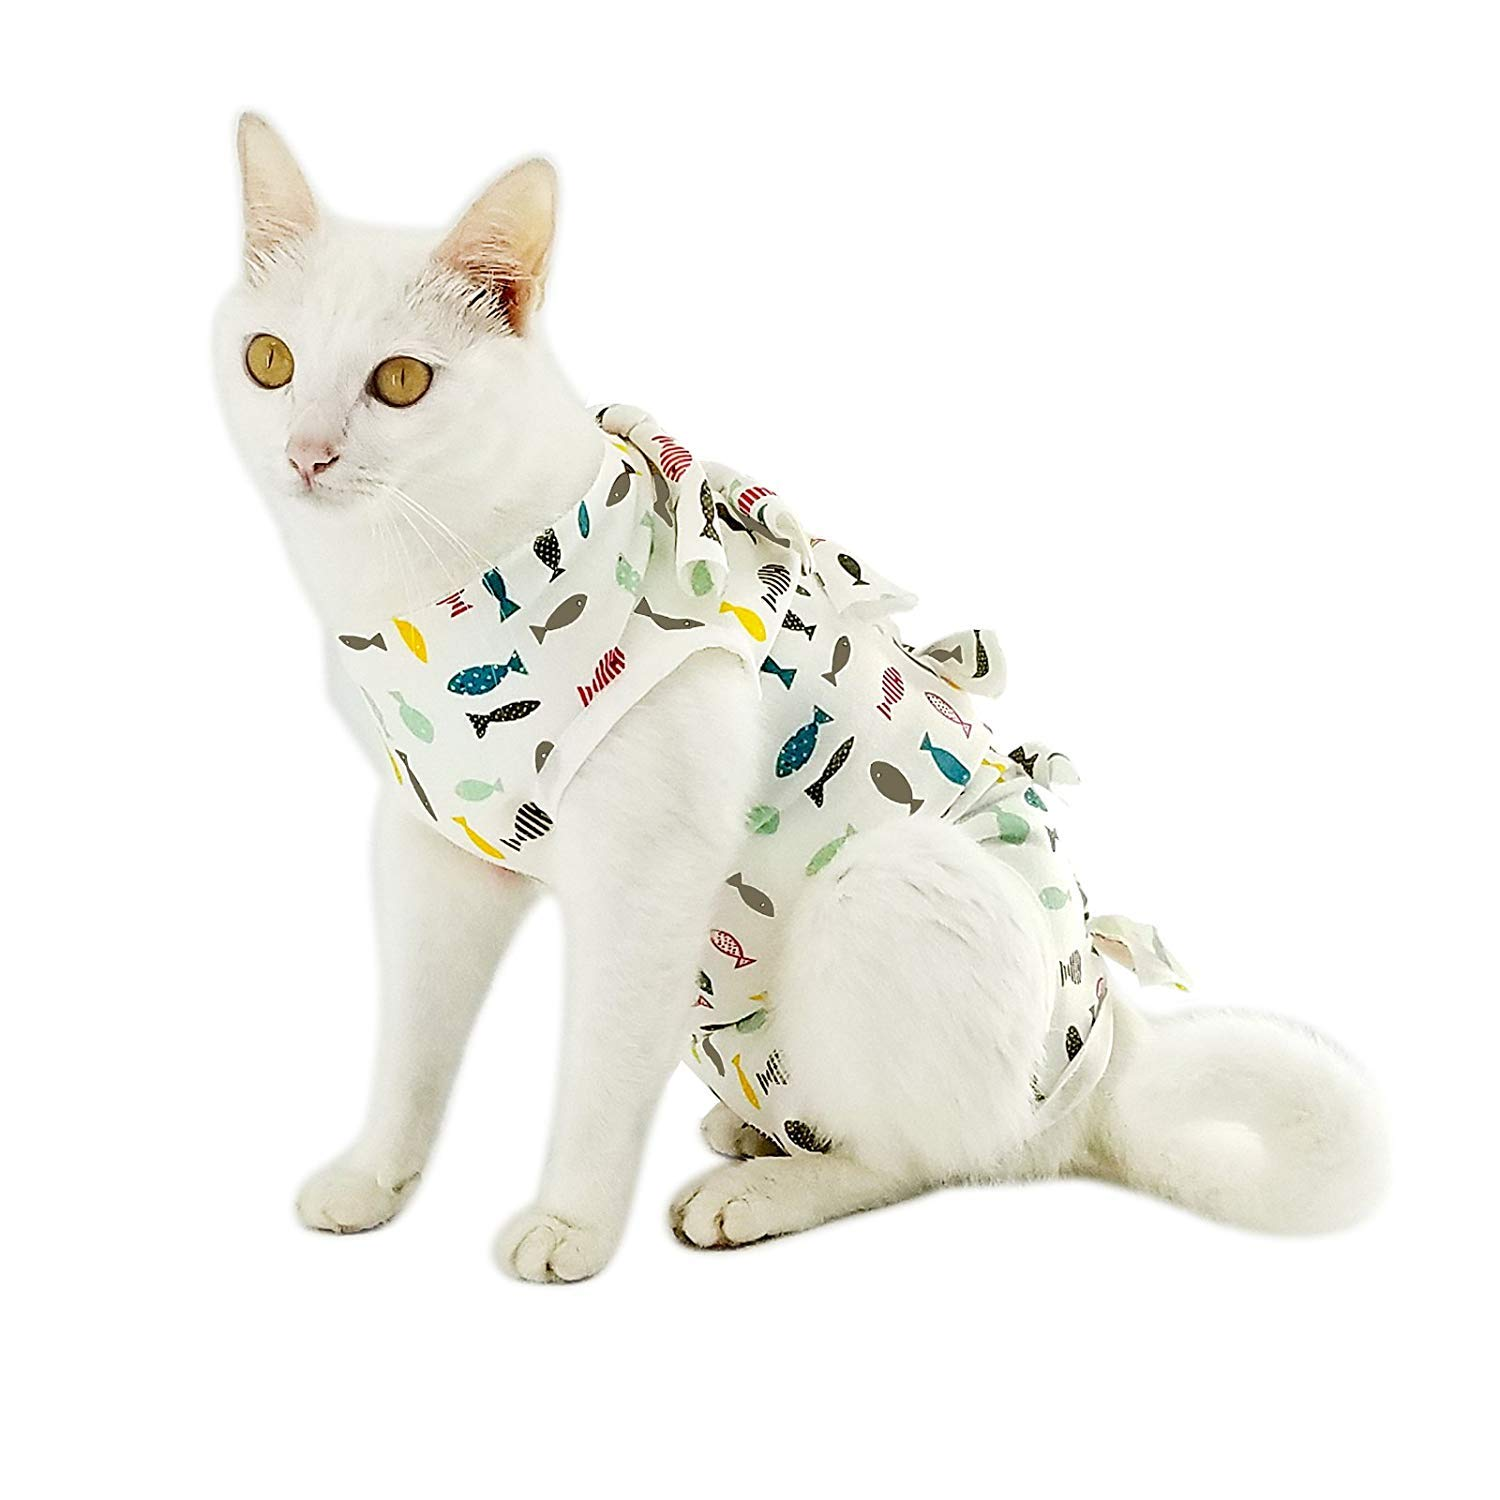 Professional Recovery Suit for Abdominal Wounds and Skin Diseases,E-Collar Alternative for Cats and Female Dogs, Size X-Small, After Surgey Wear, Recommended by Vets